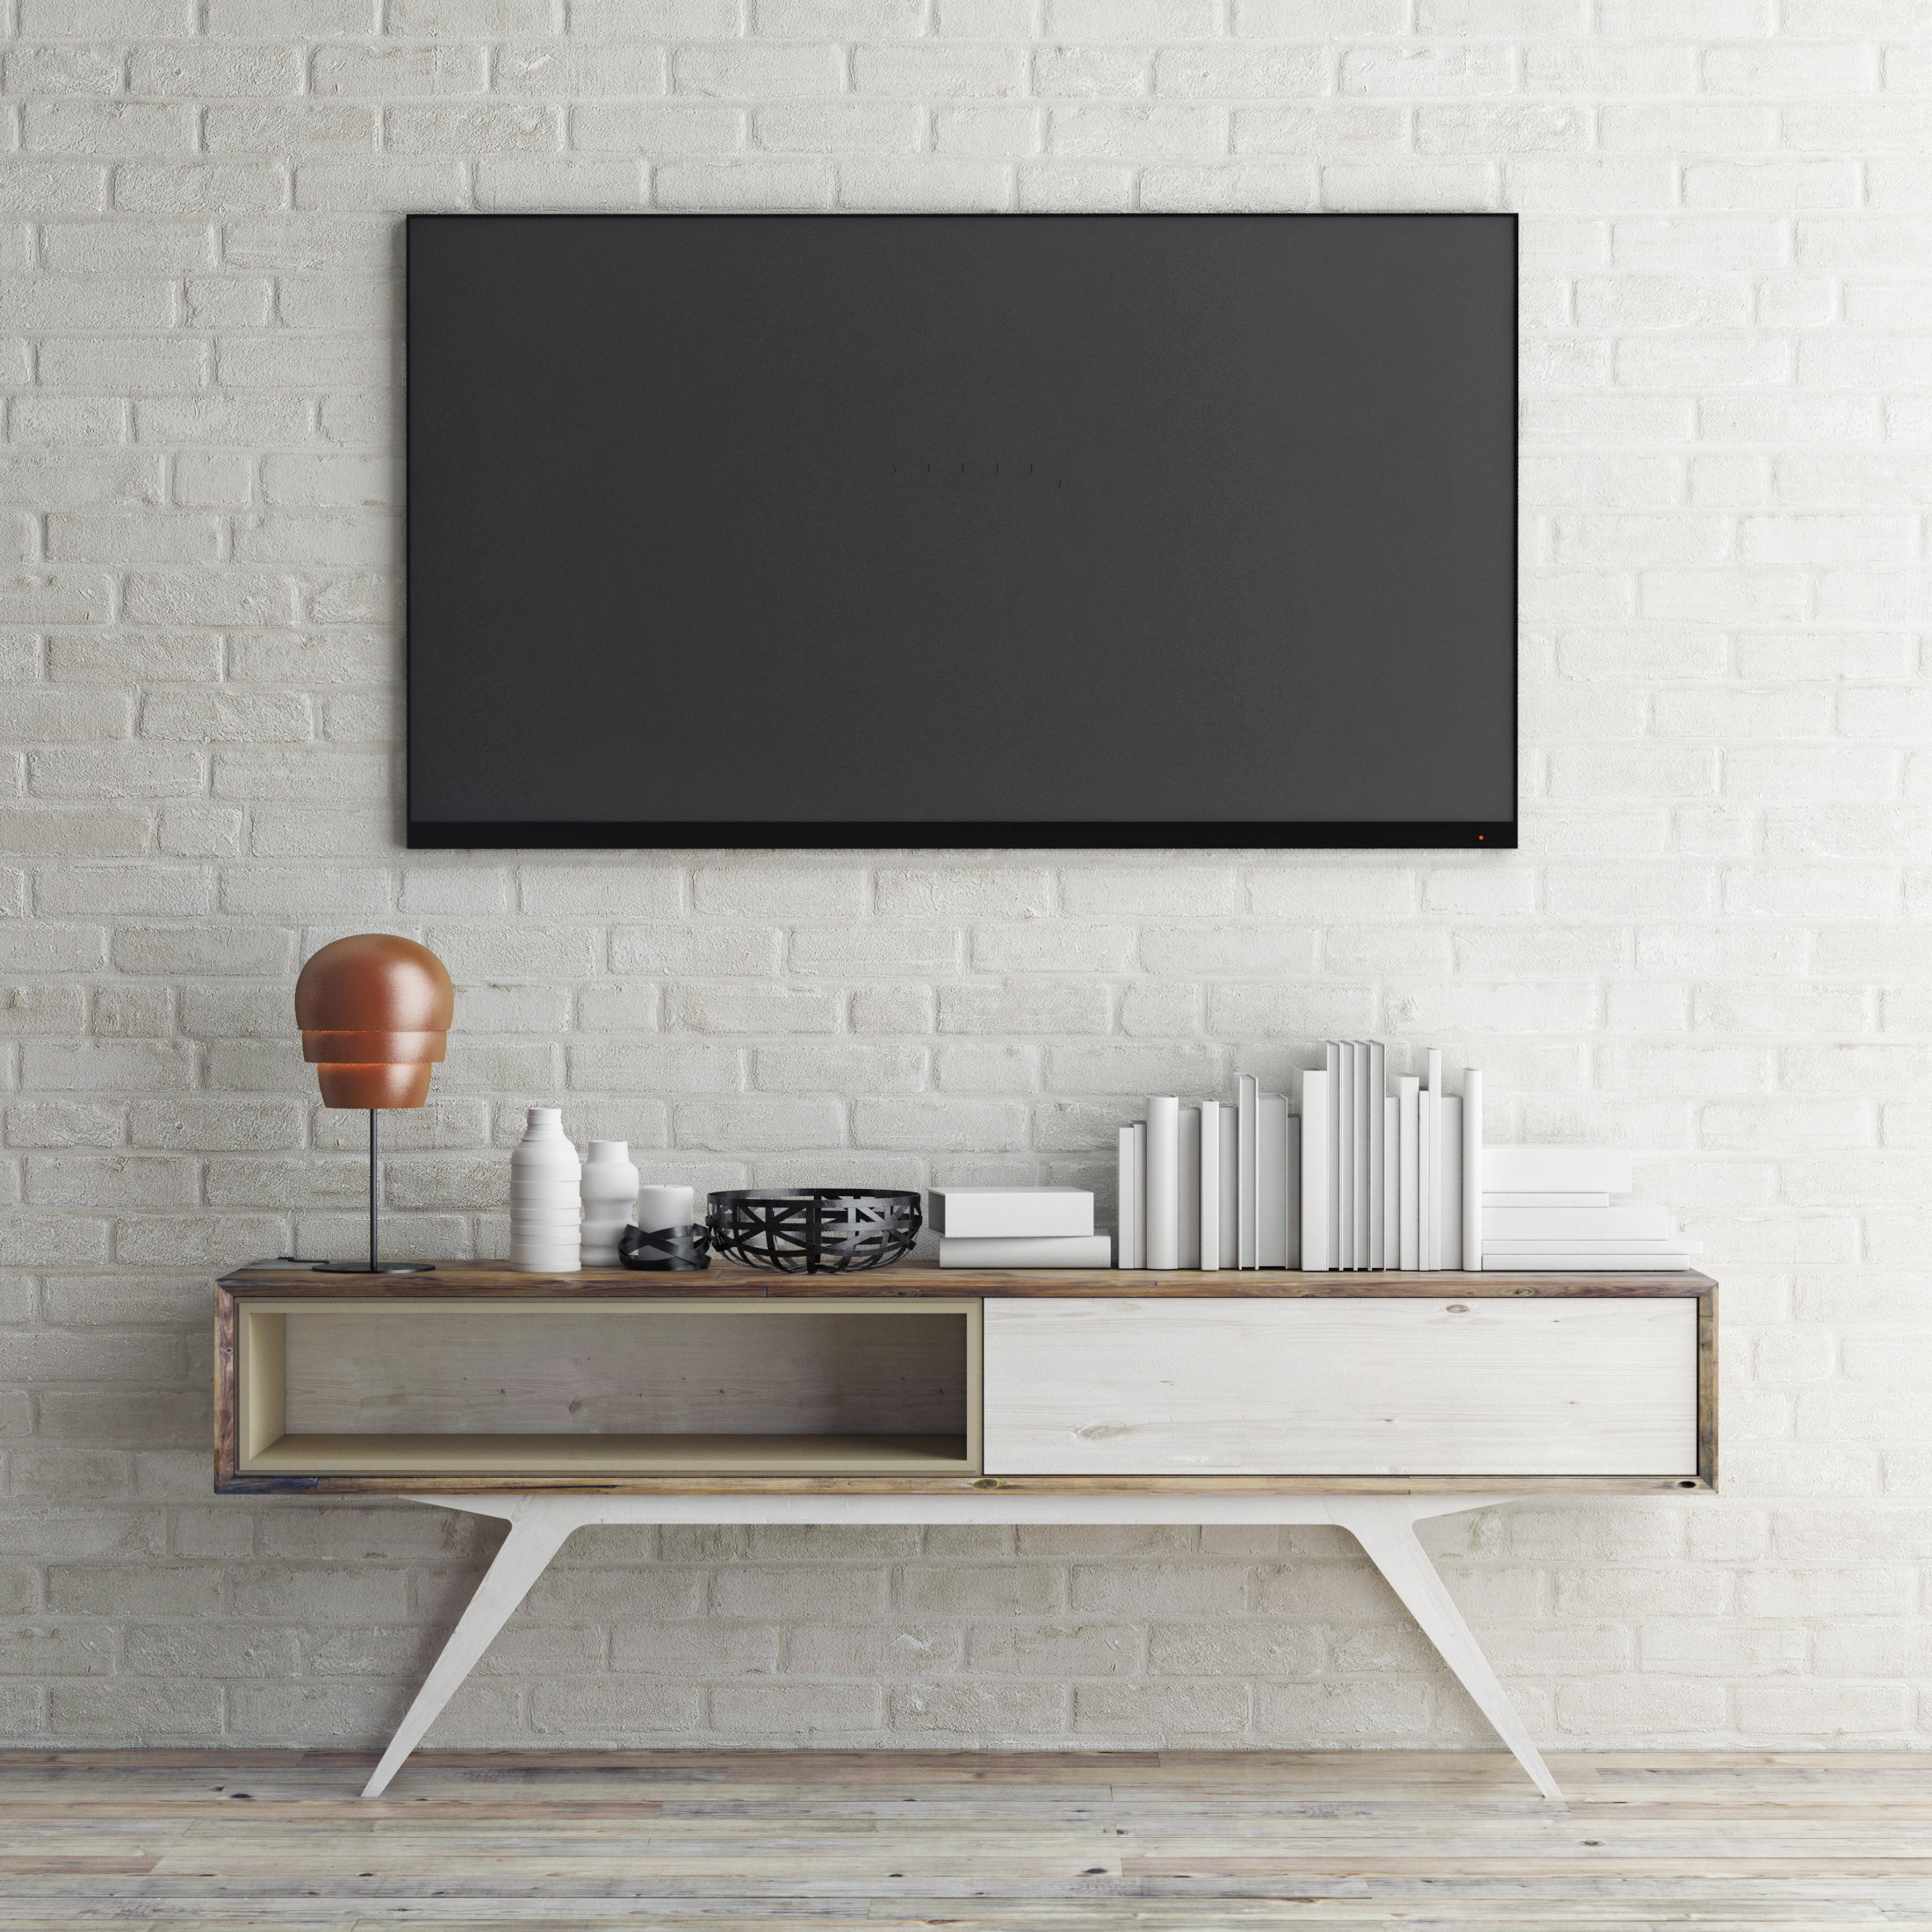 What your TV on your terms. With OrangePiel custom TV cover shades, you can watch TV when you want and enjoy artwork unique to you when not.